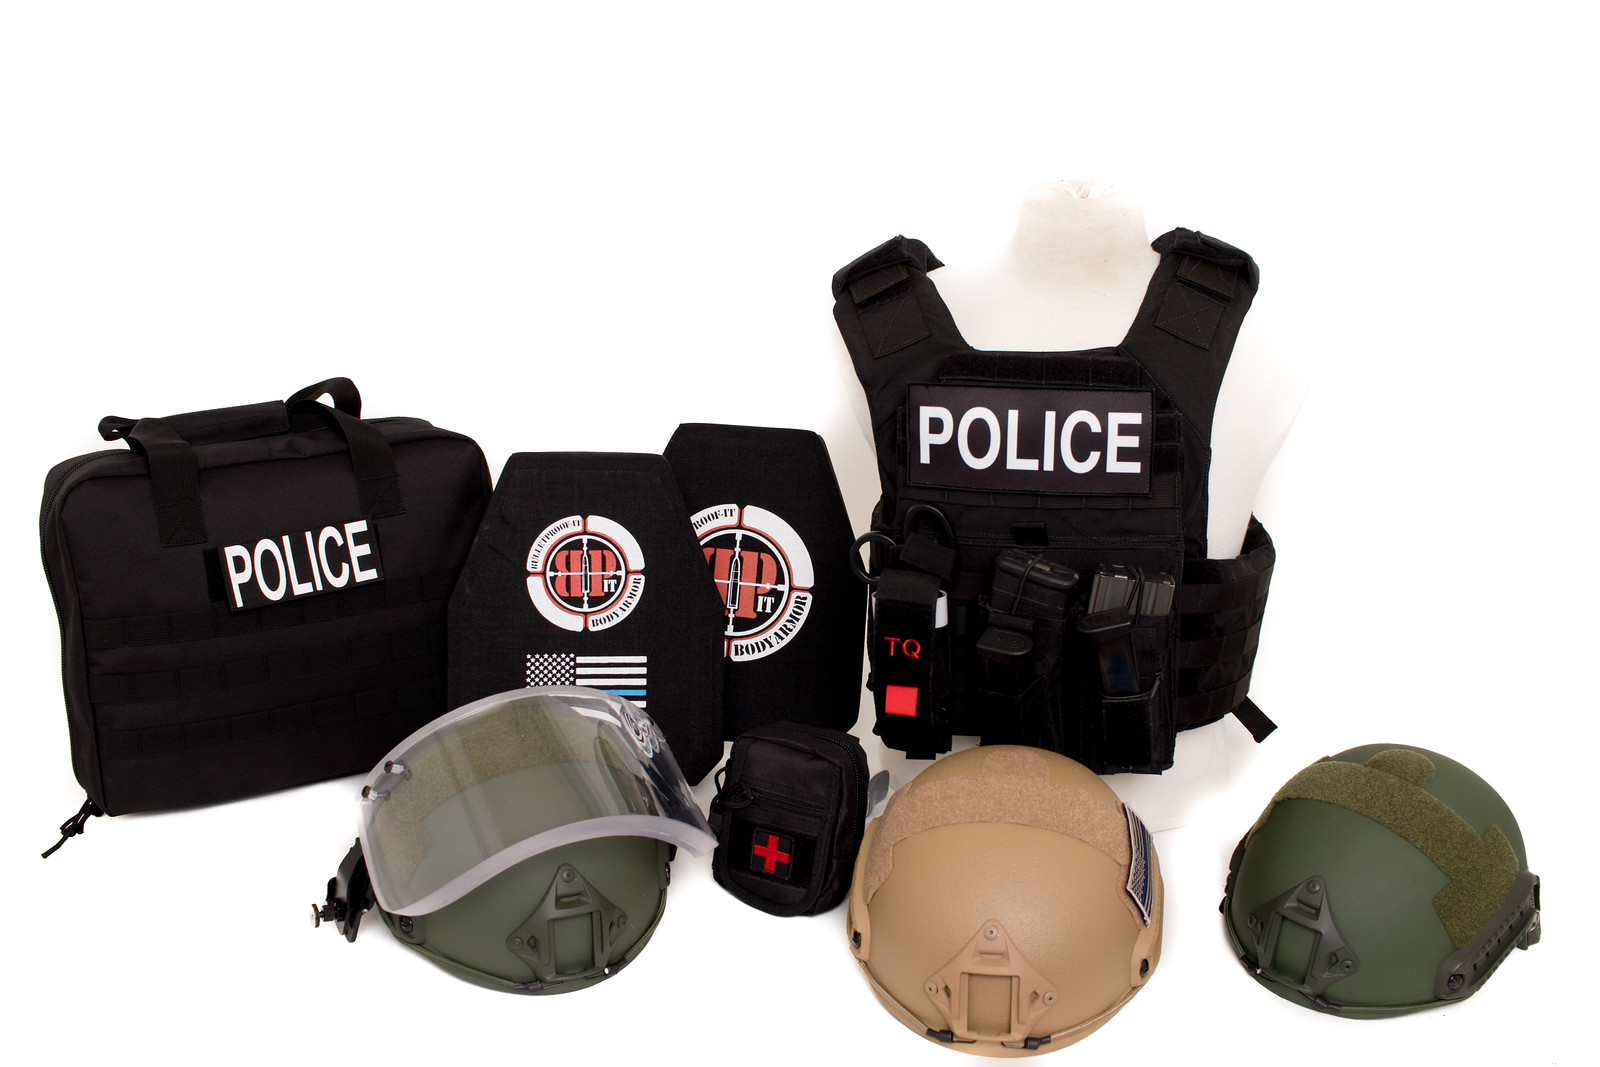 BULLETPROOF IT, LLC-Banshee Full Kit with Bag-2-Black  Police Patch-all helmets